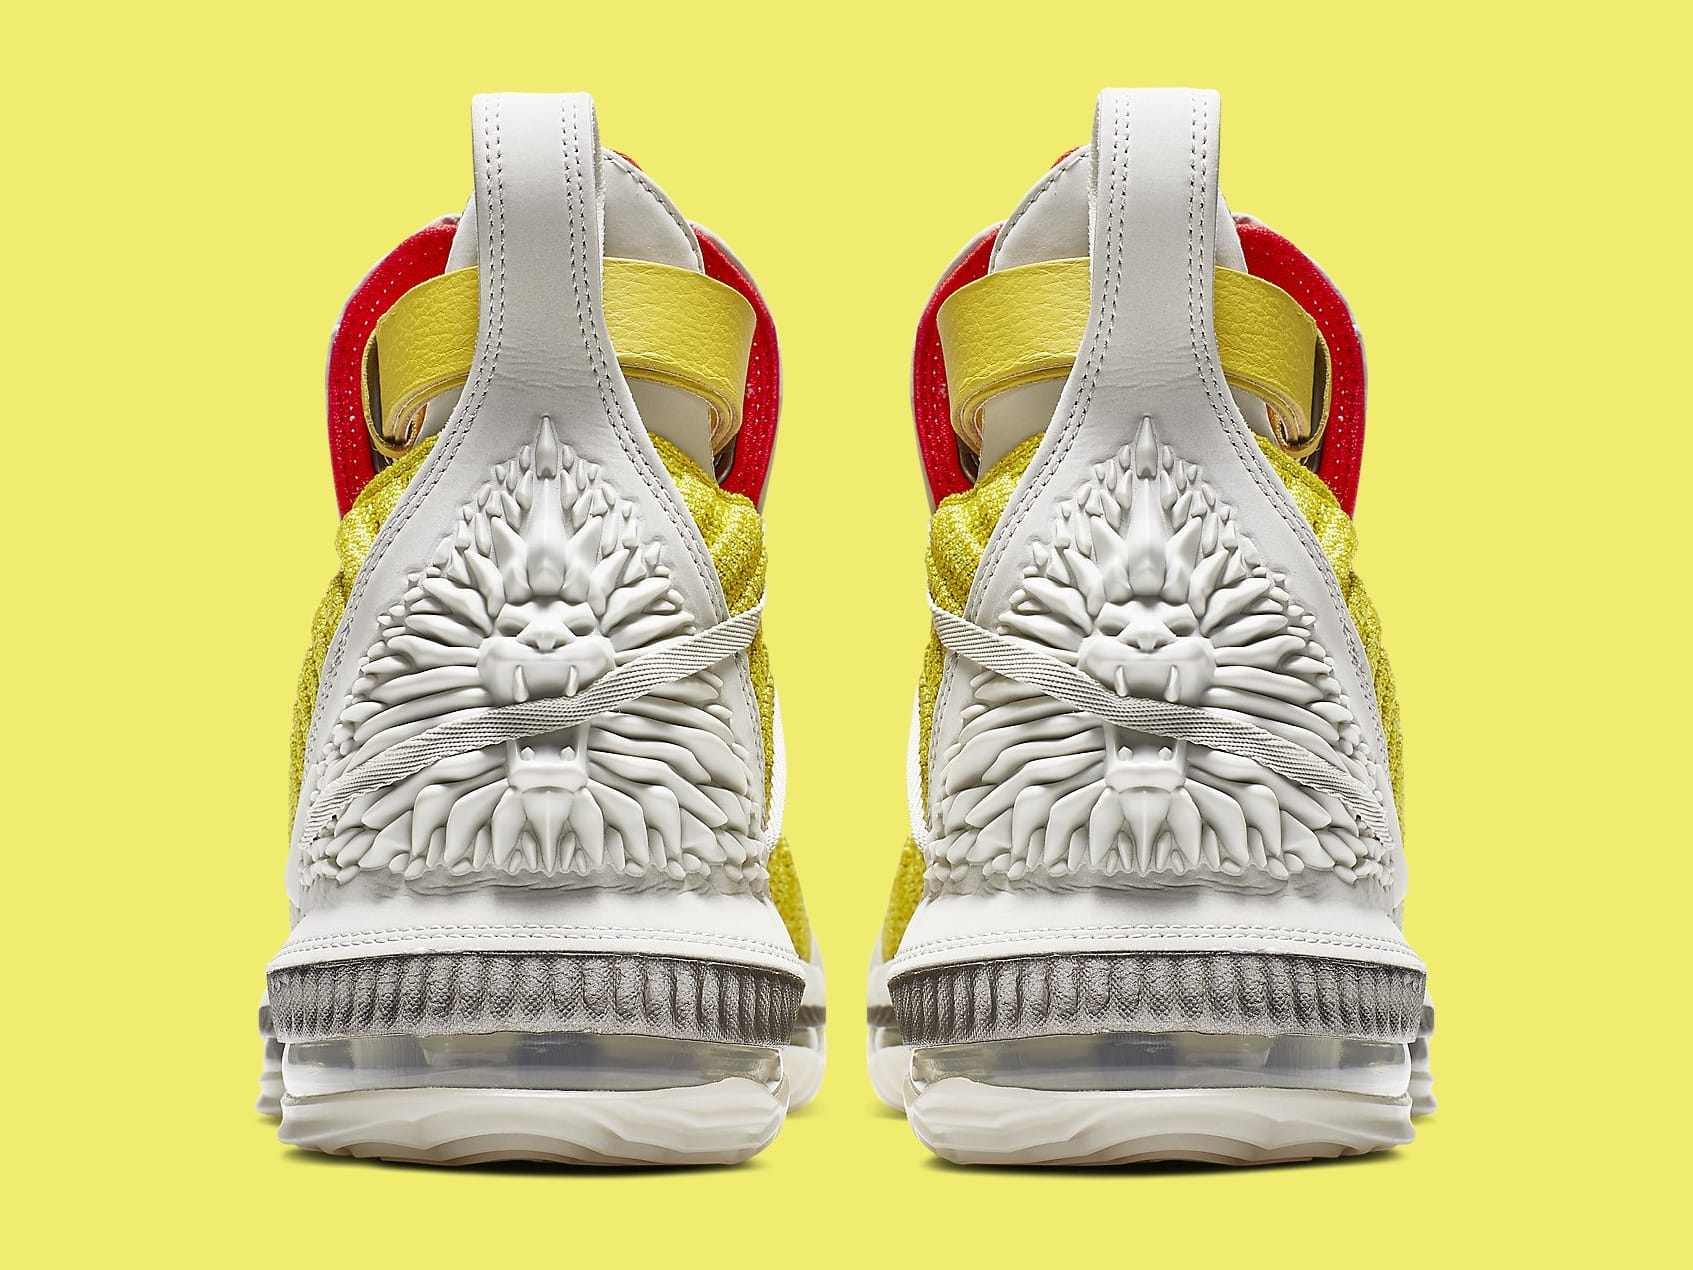 cheap for discount 1feb6 ca662 Nike LeBron 16 HFR Bright Citron Release Date CI1145- 700 ...